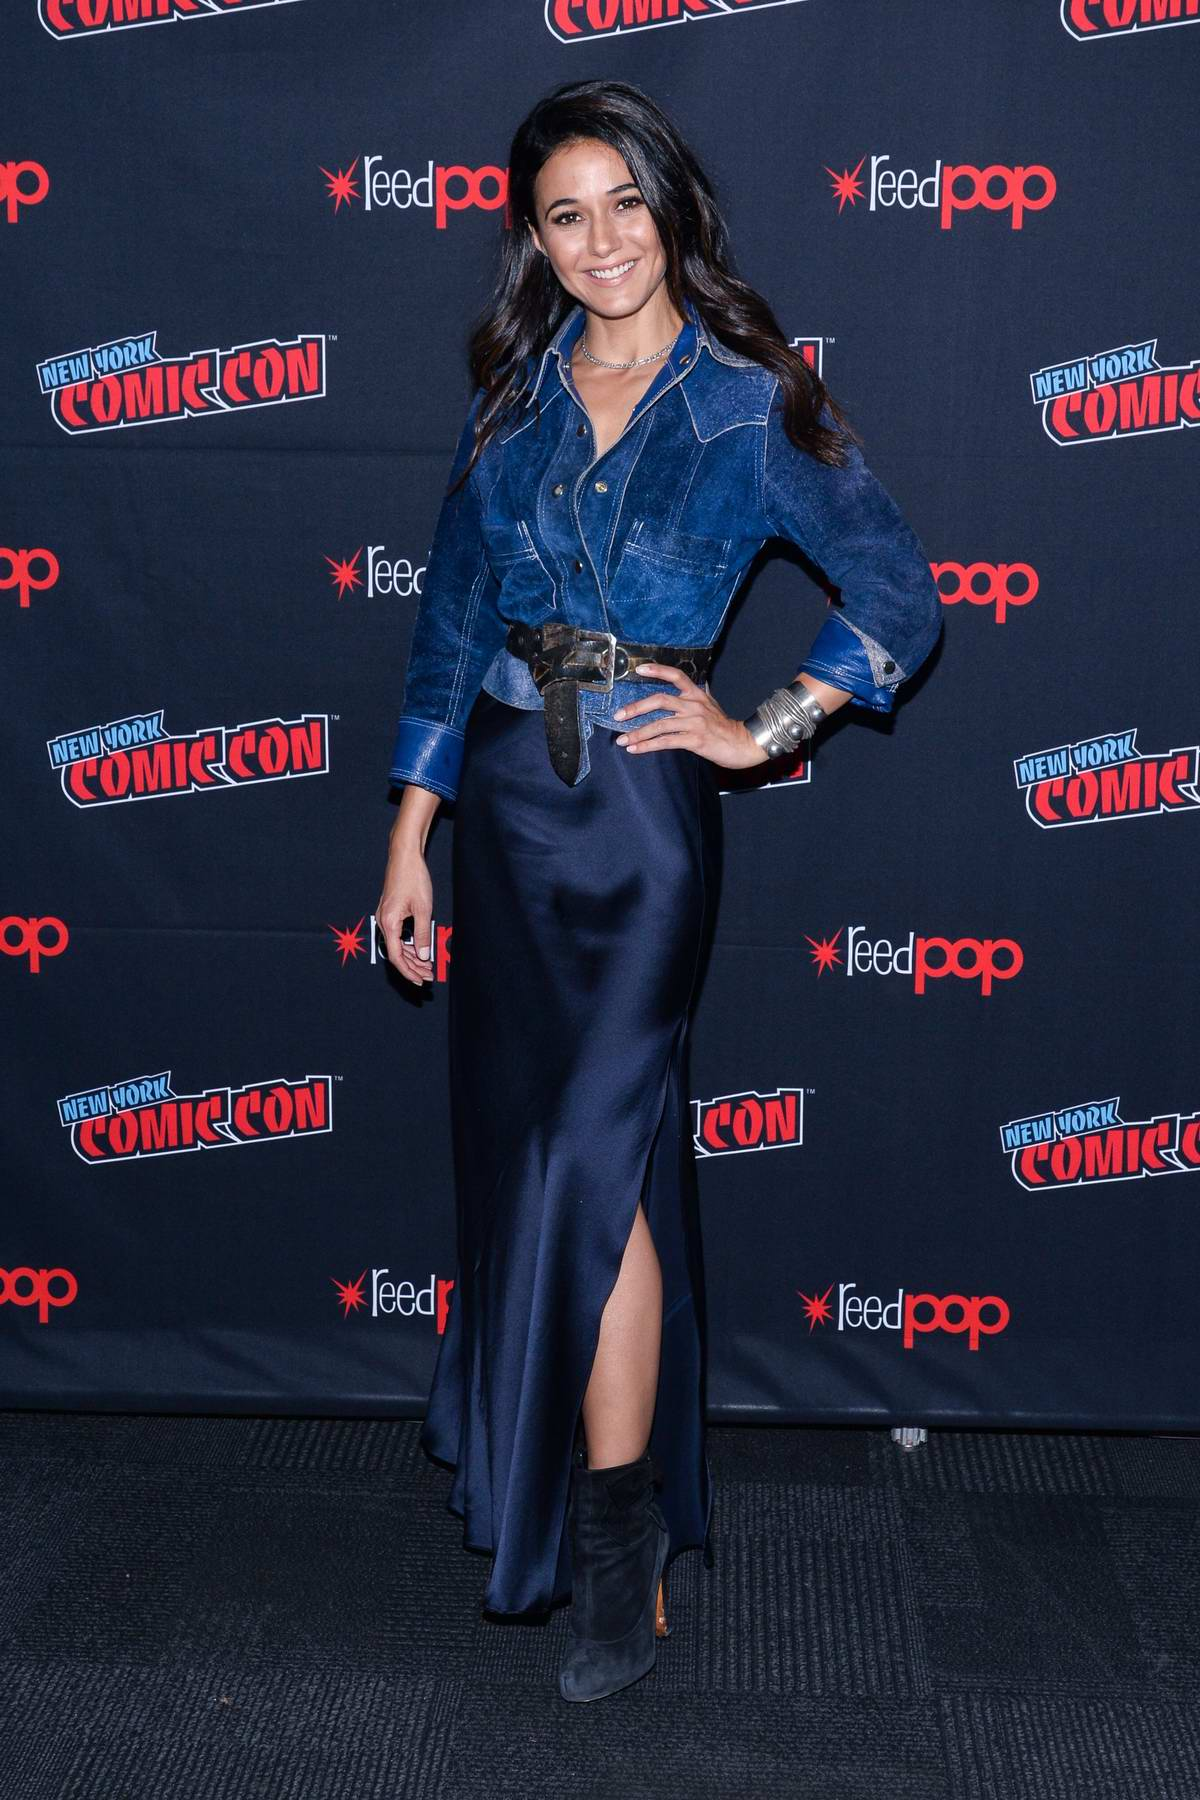 Emmanuelle Chriqui attends 'The Passage' panel during New York Comic Con 2018 (NYCC 2018) in New York City